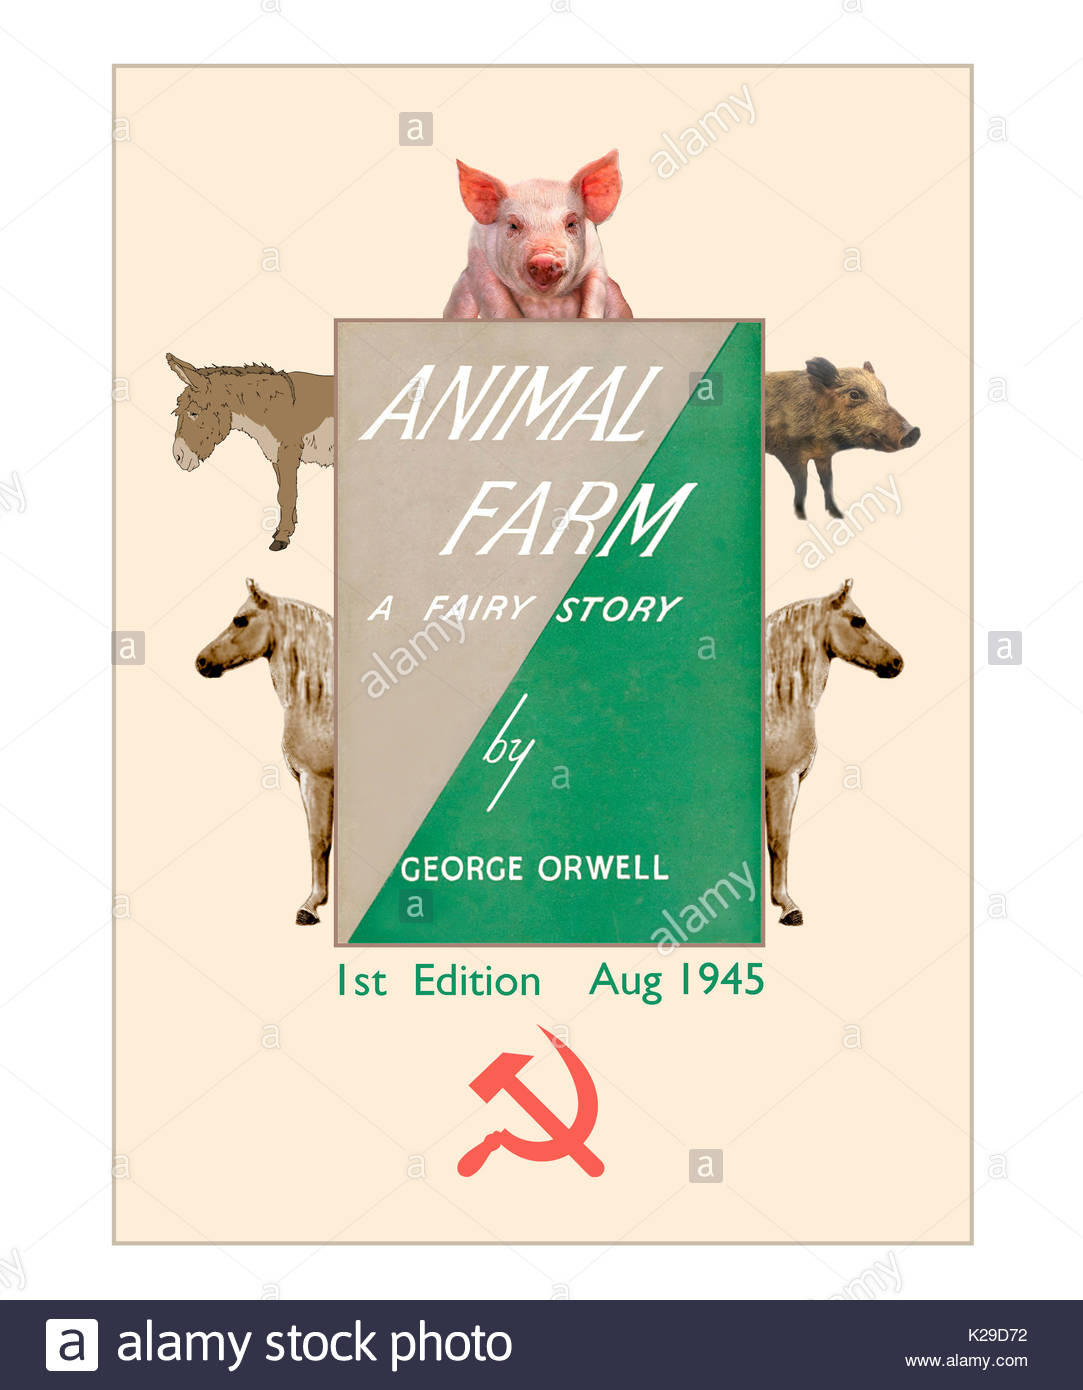 old majorís speech in george orwells animal farm essay The novel animal farm, by george orwell, is an allegory that explores the end of the czarist power in russia the term 'survival of the fittest' applies to the character mollie in this novel who symbolically represents the bourgeoisie of russia.